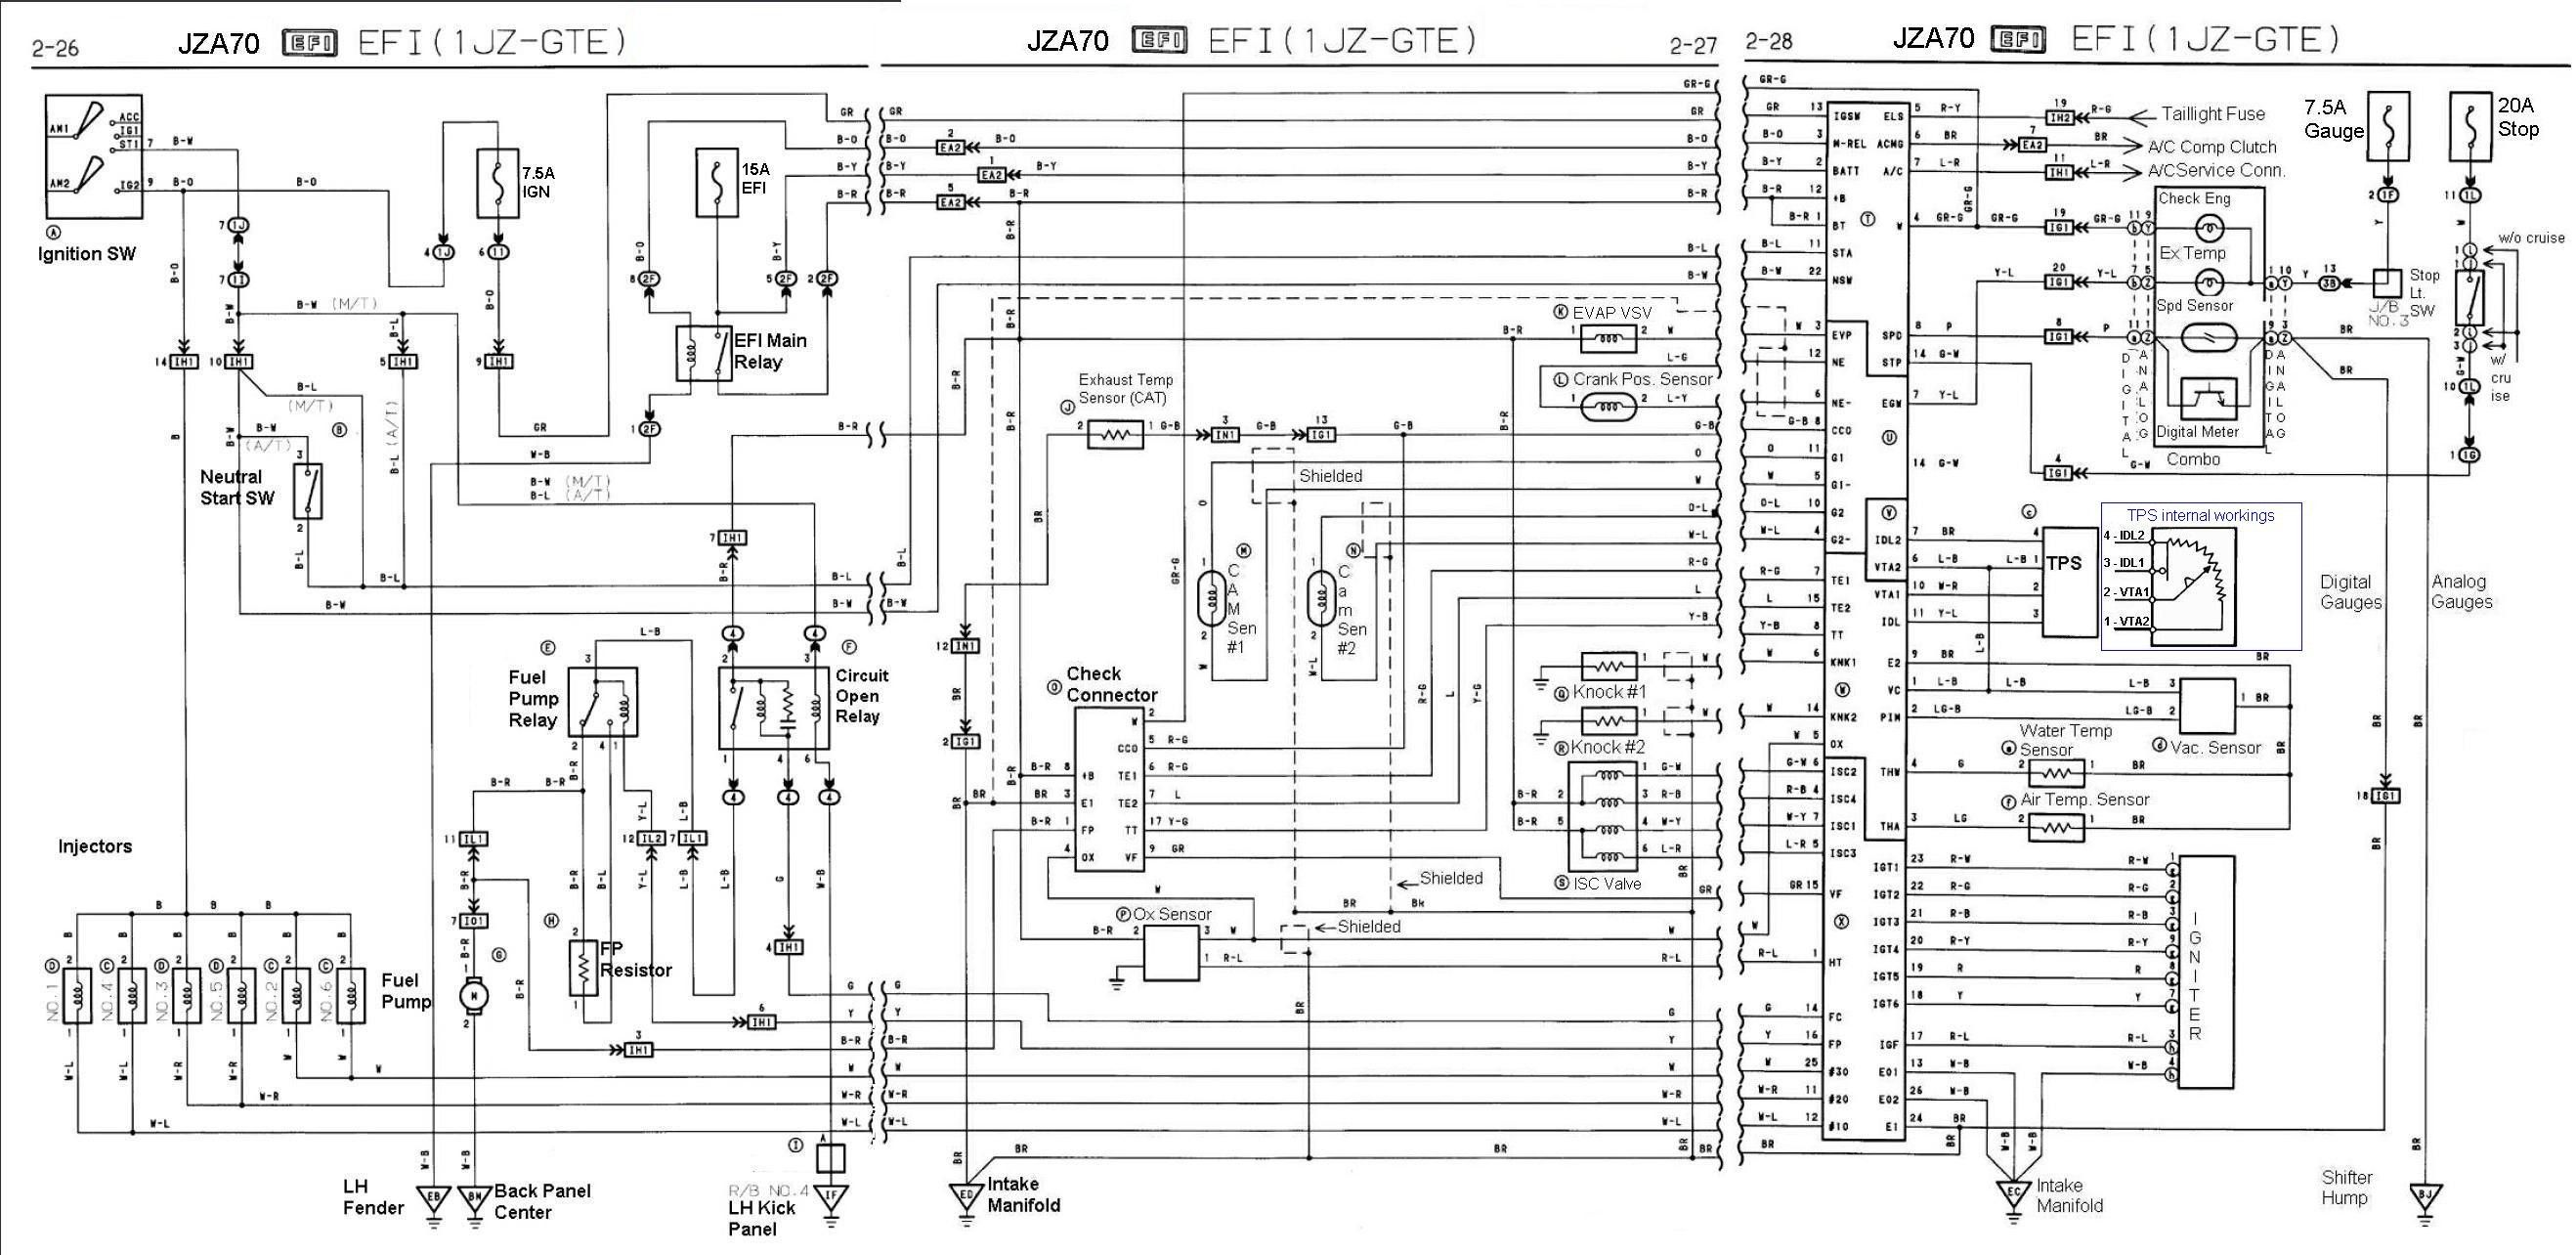 1999 Saab 9 3 Amplifier Wiring | schematic and wiring diagram